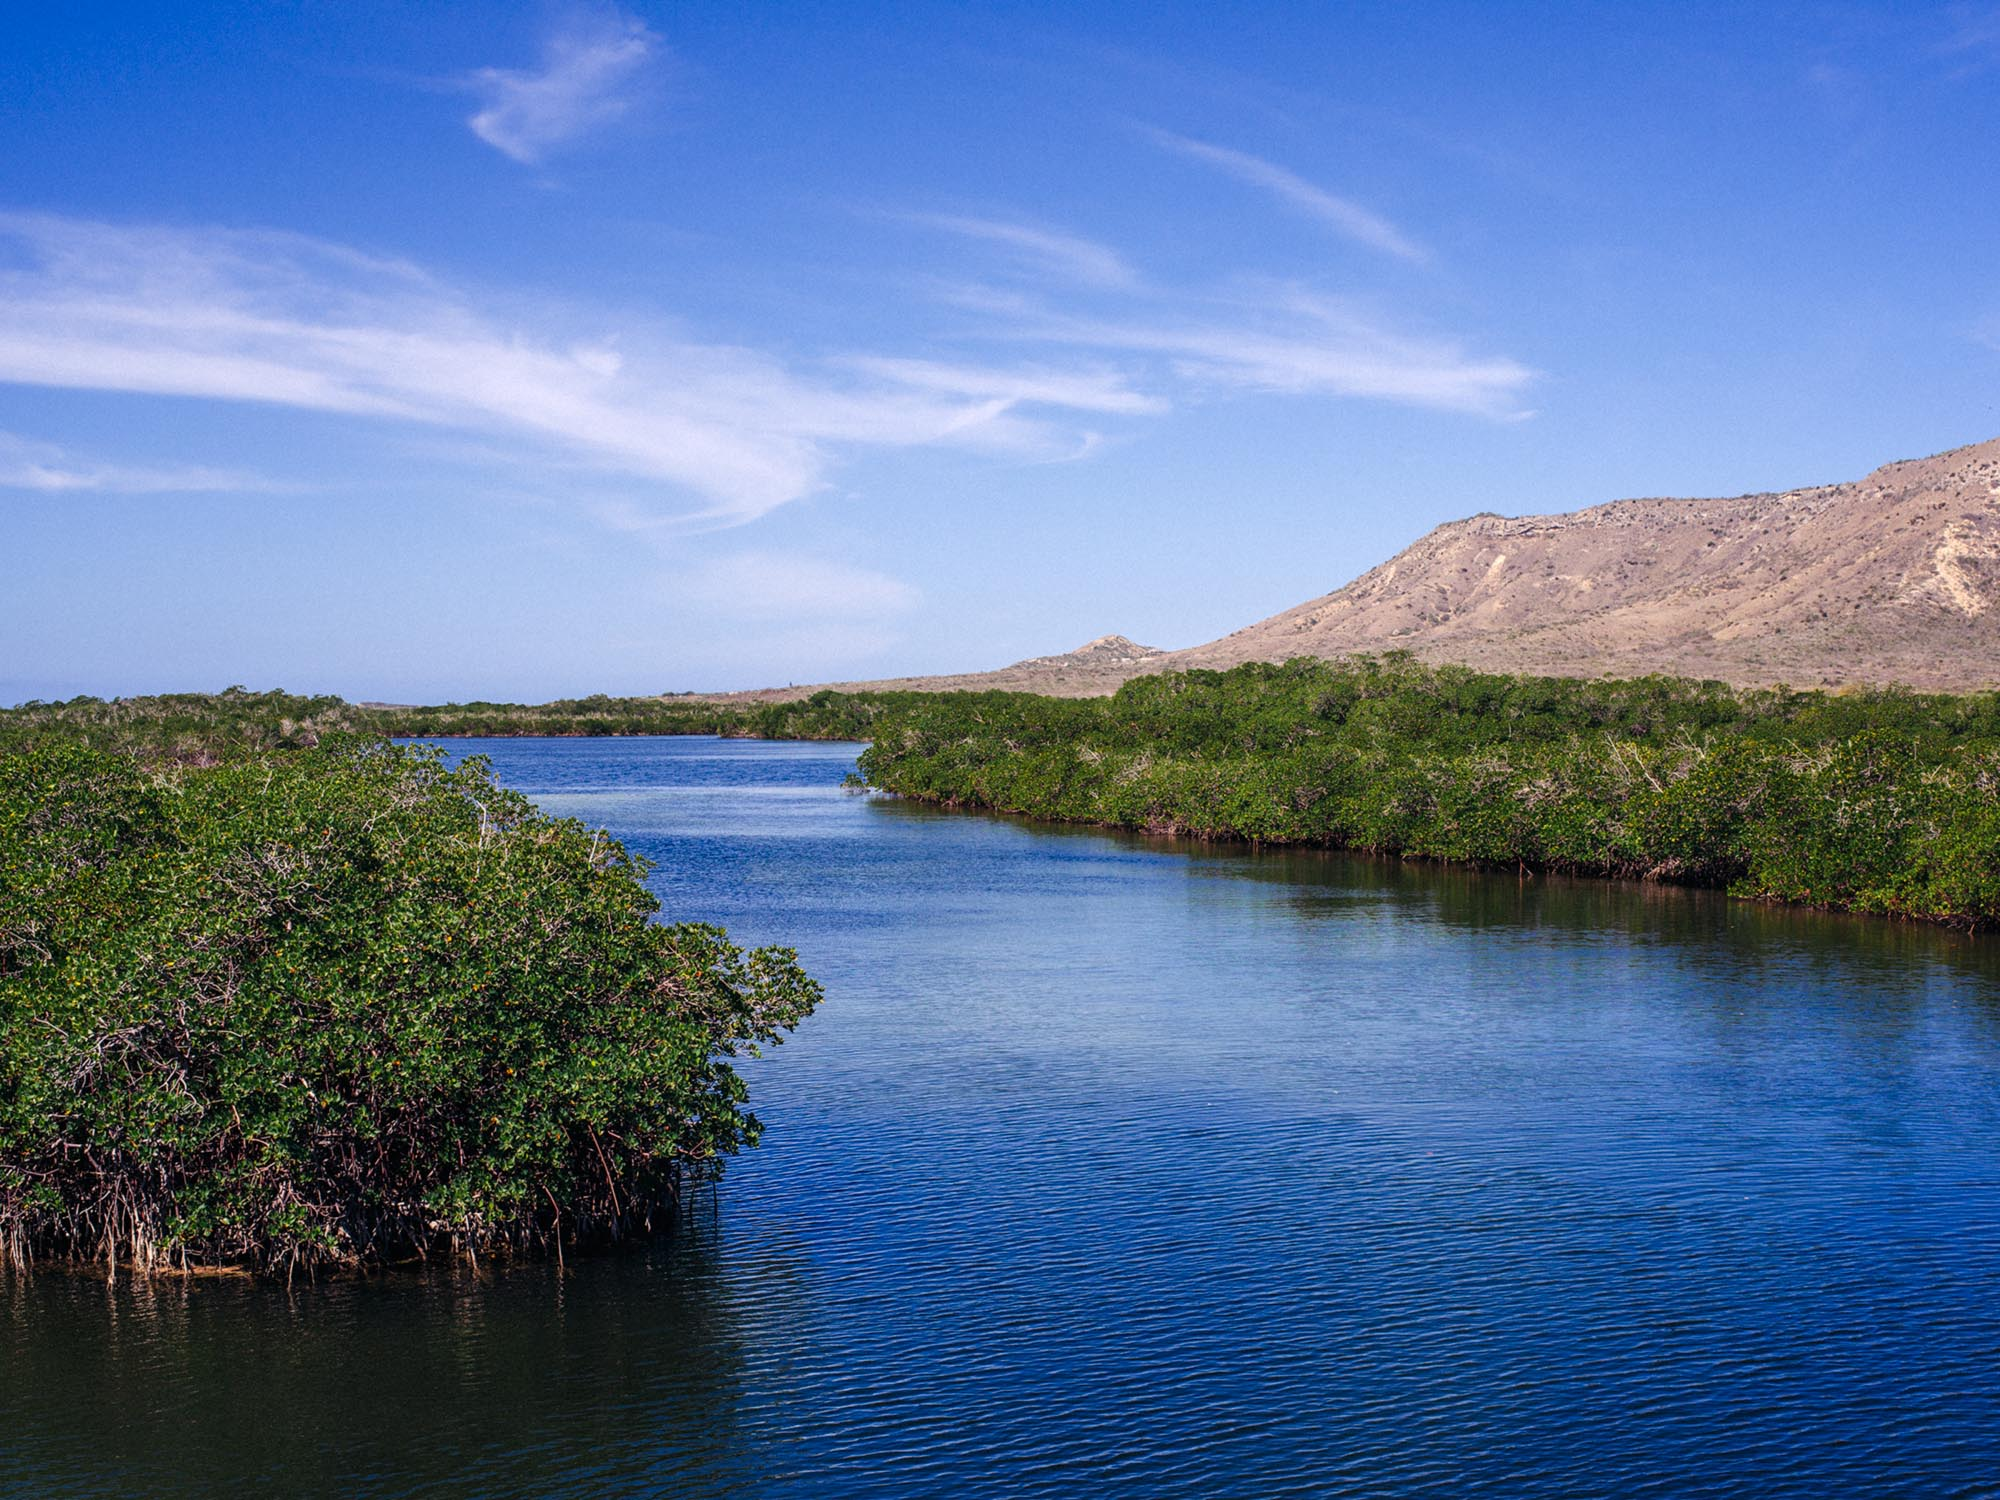 Mangroves in Montecristi.